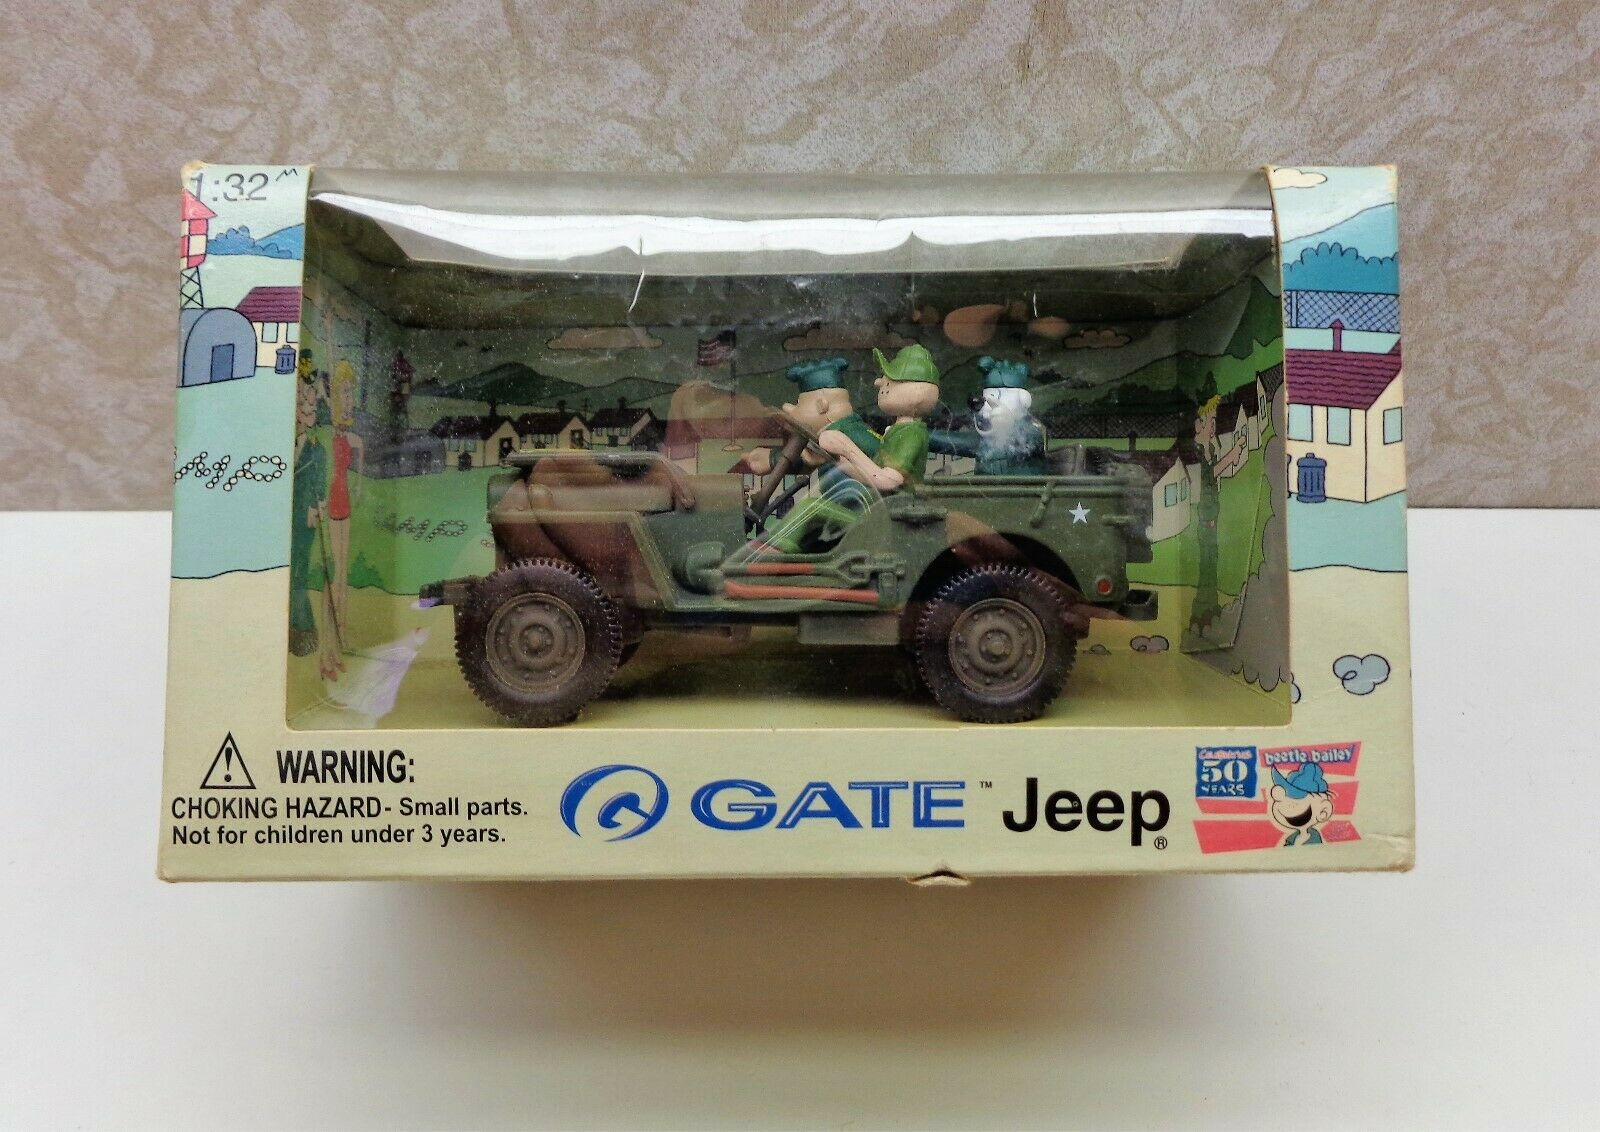 GATE-MODELS BEETLE BAILEY IN JEEP ADVENTURES 1 32 SCALE TOY  NEW IN THE BOX